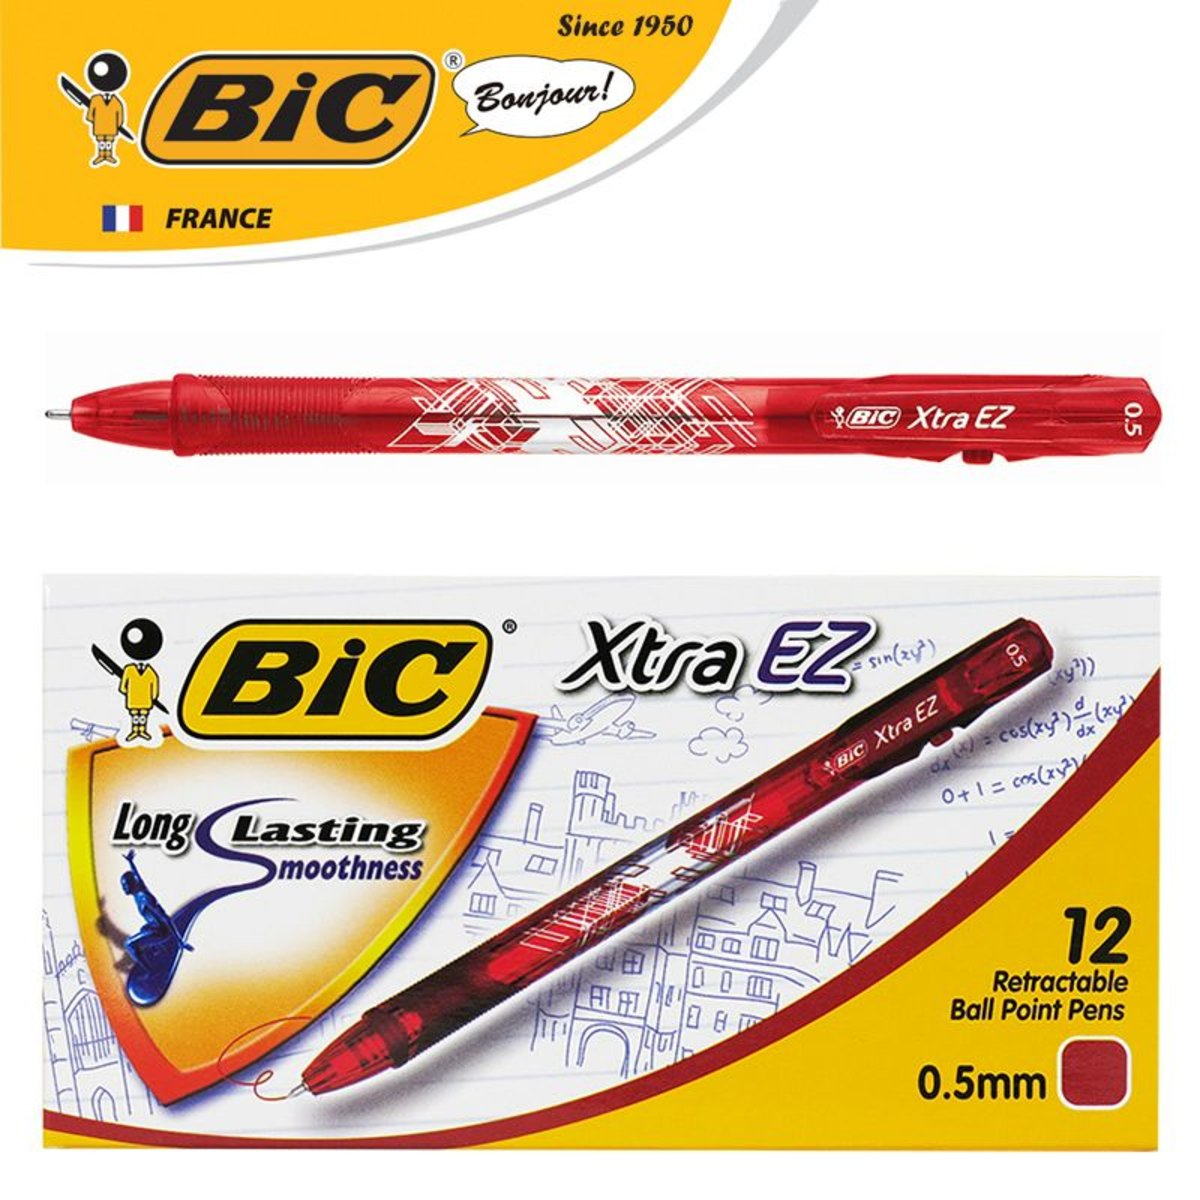 Xtra EZ Clic 0.5mm Ball Pen – Red | 12 pcs/box